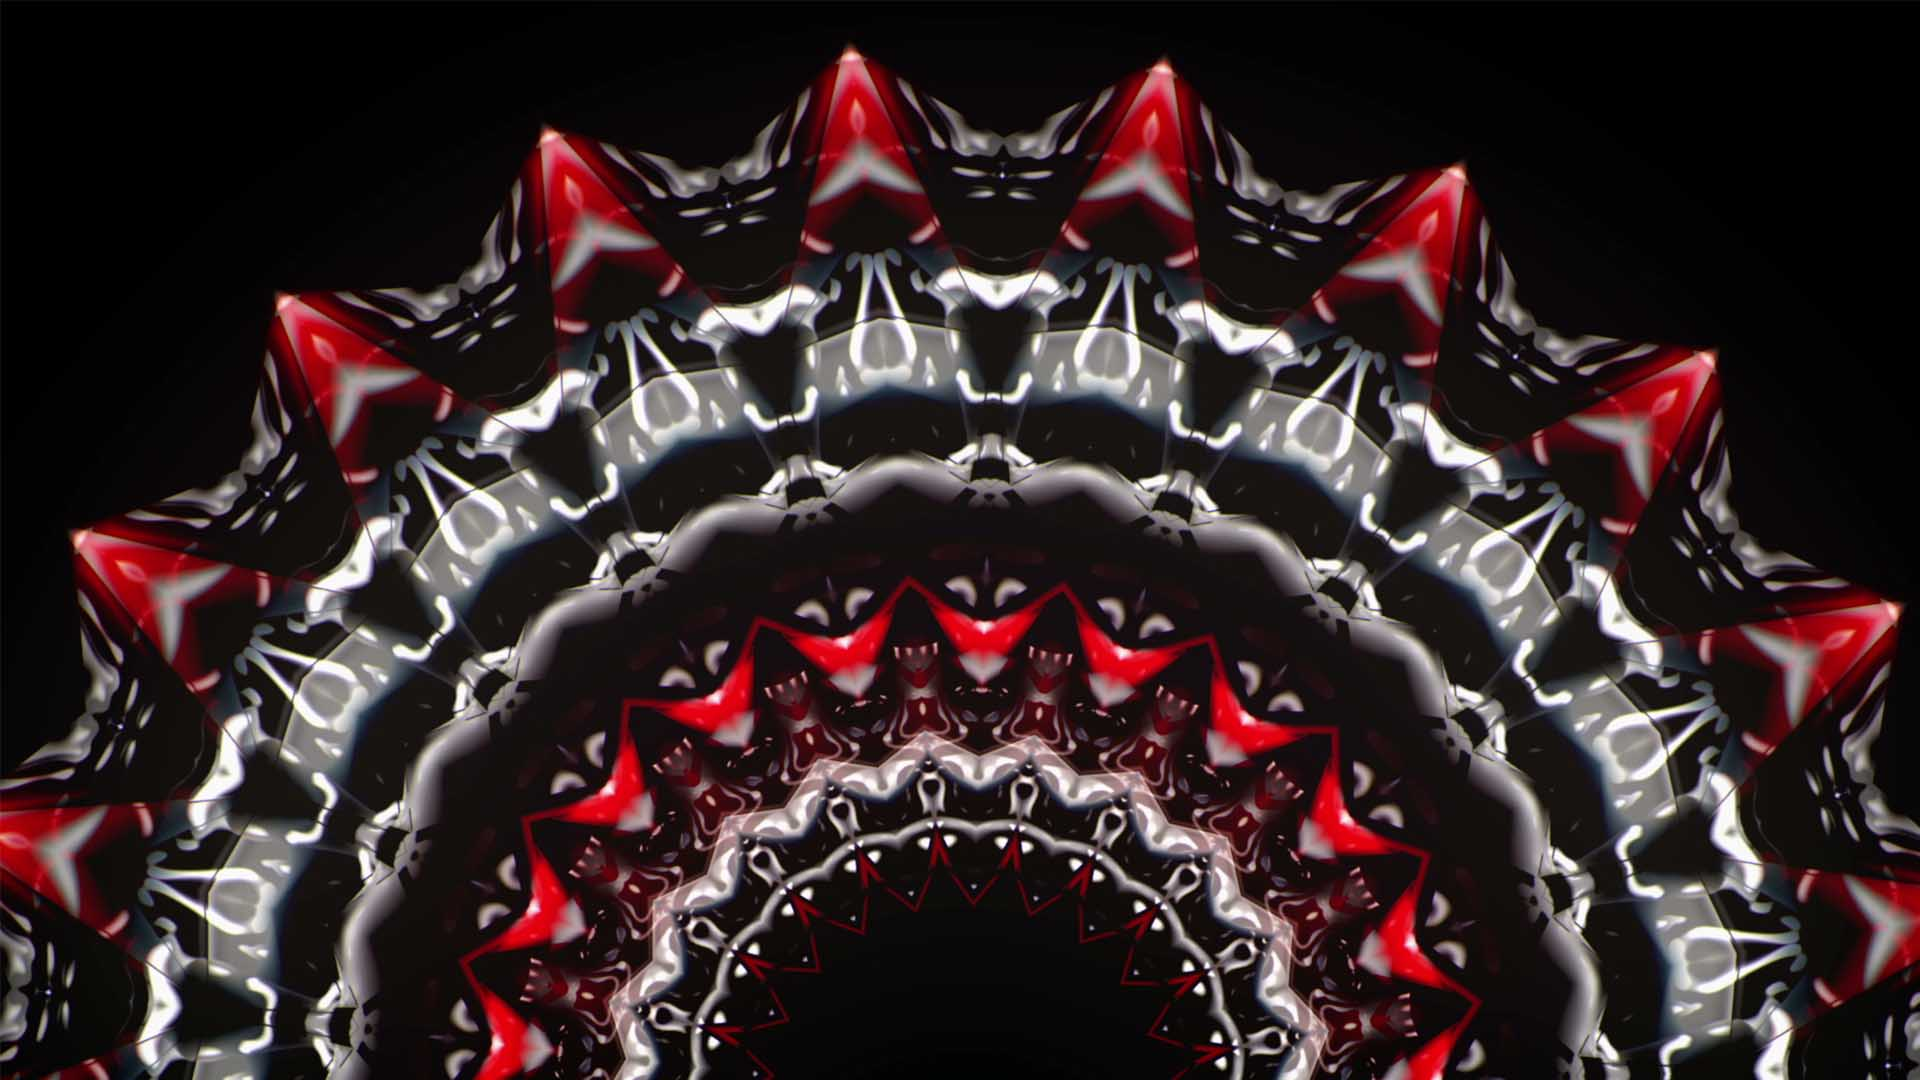 HEARTBEAT__Red_Motion_Background_Geometric_Low_poly_vj_loop